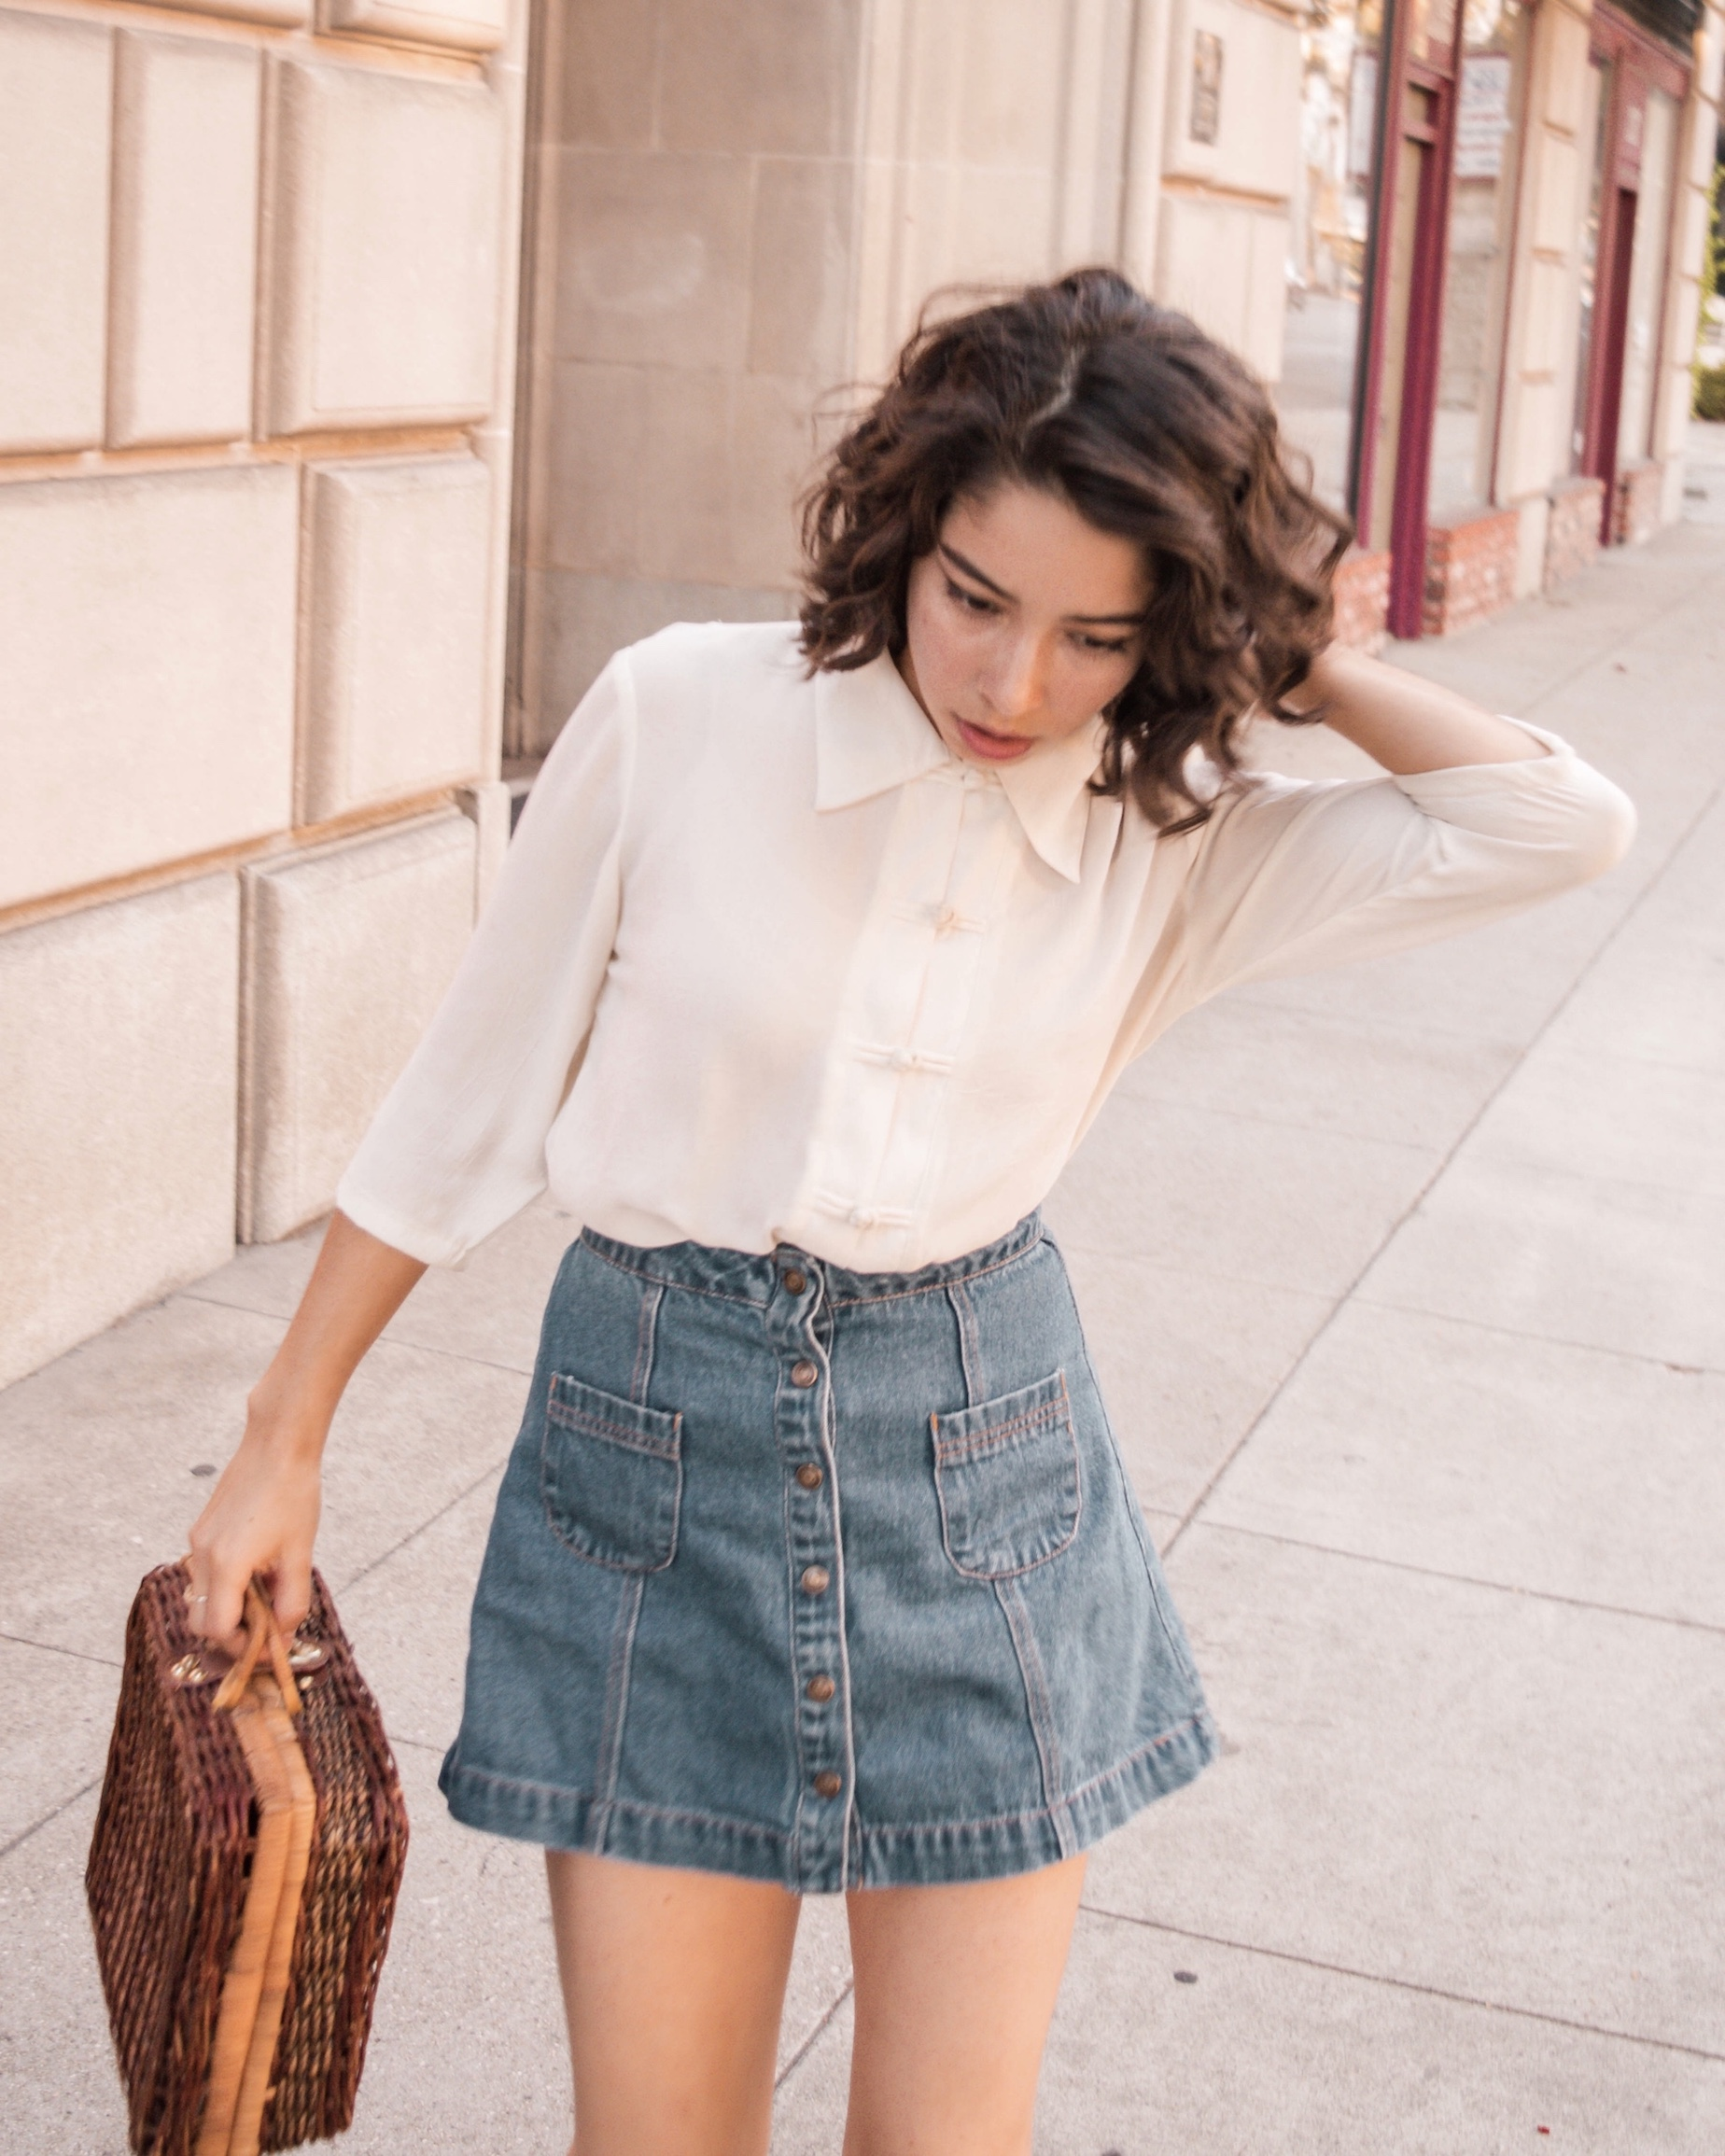 Minimalist outfit ideas // A Week Of Self-Expressive Outfits With Aja Duran From Aja With Love on The Good Trade